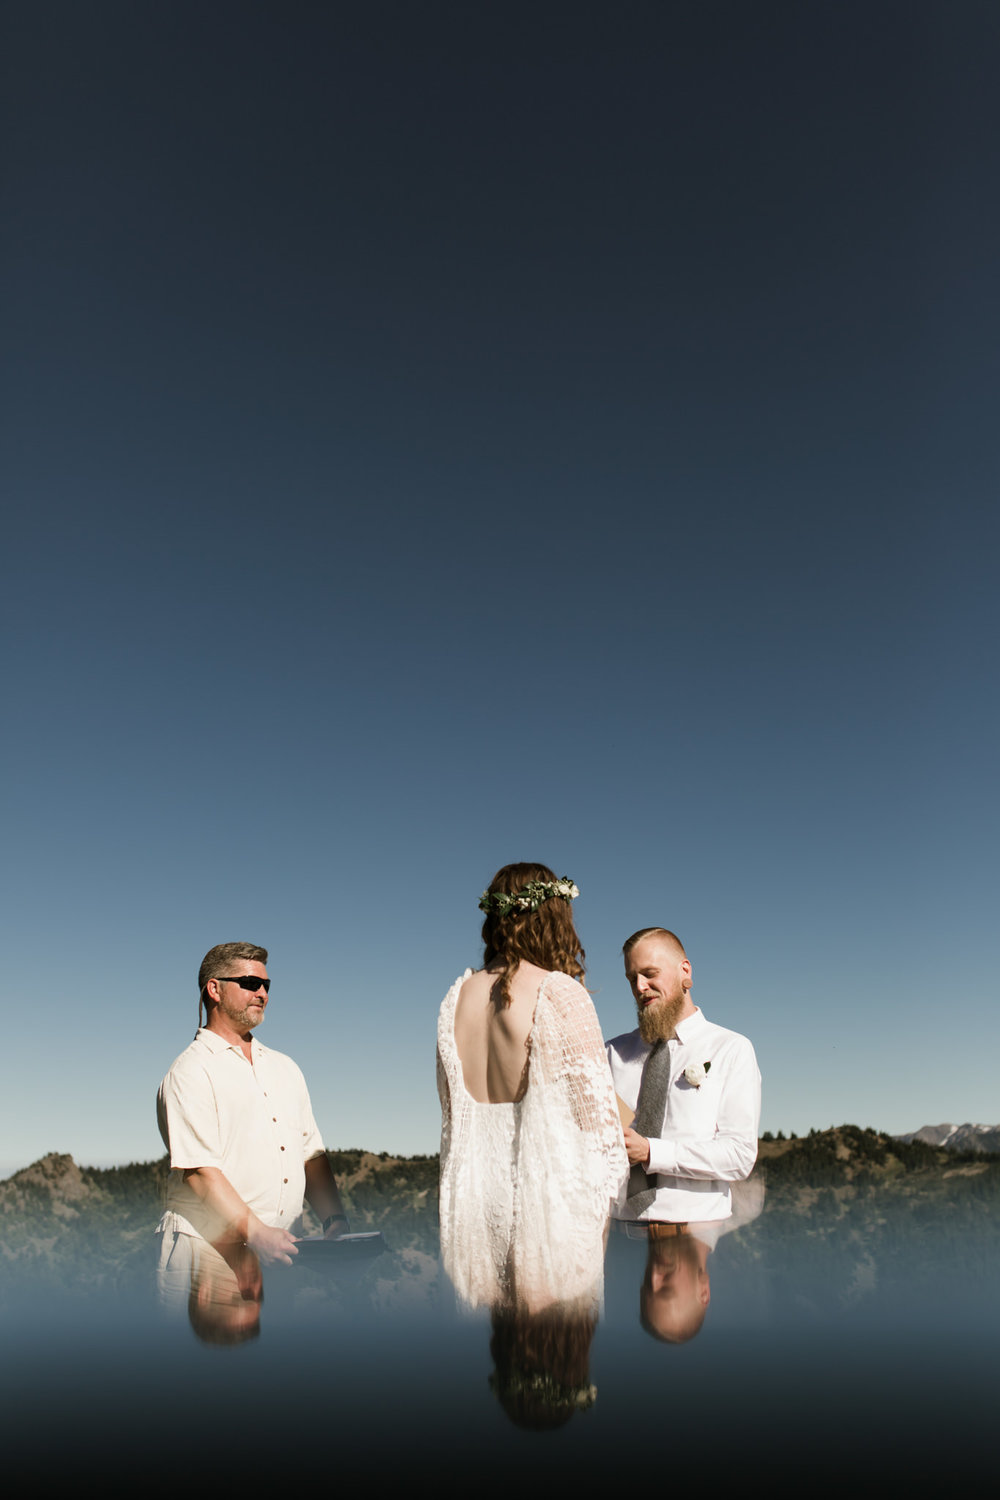 Jesse-Kasie-Hurricane-Ridge-Wedding-11.jpg